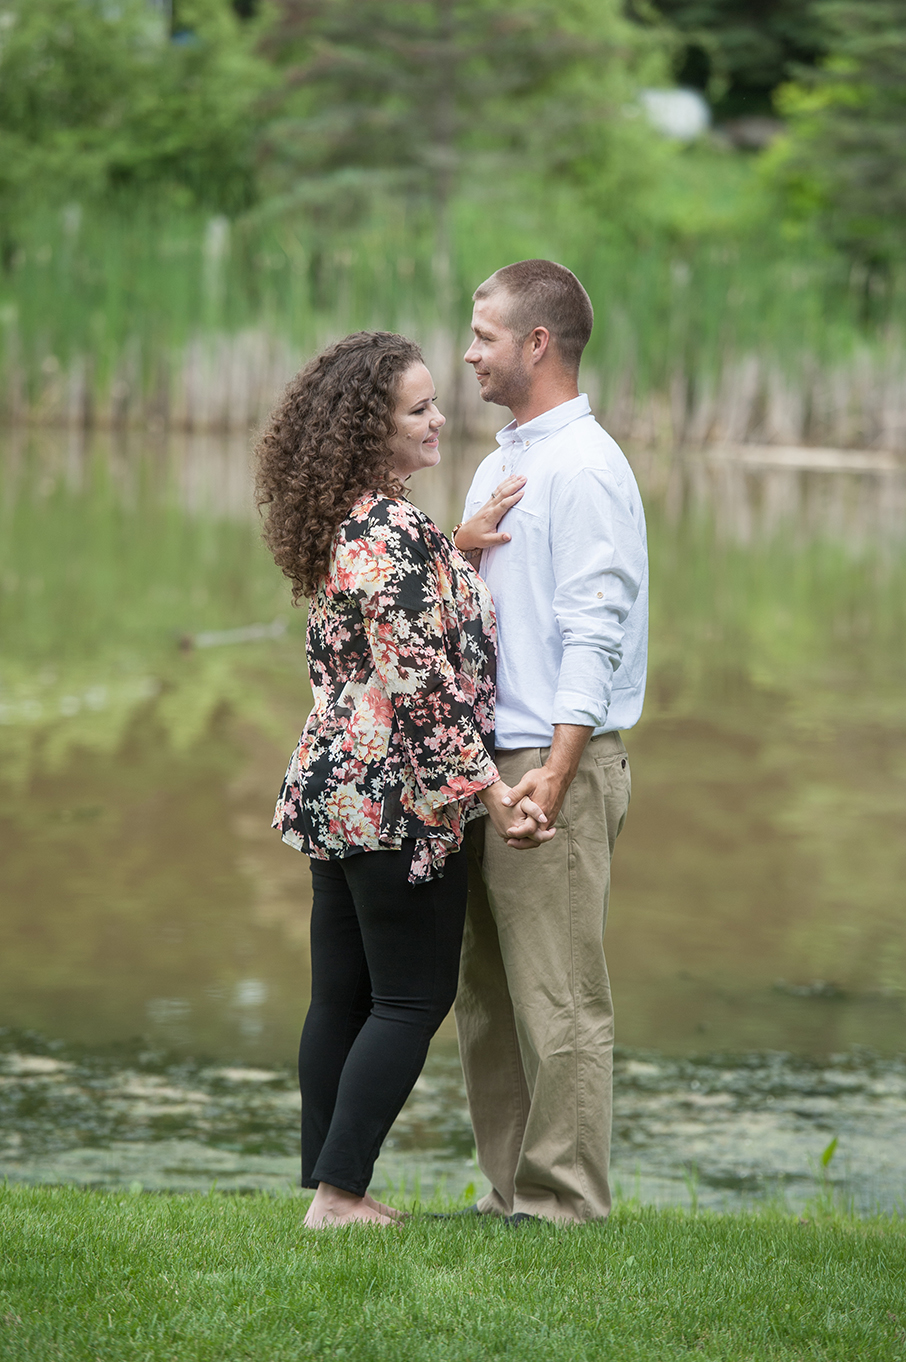 Holly&Rob_EngagementSession-49.jpg